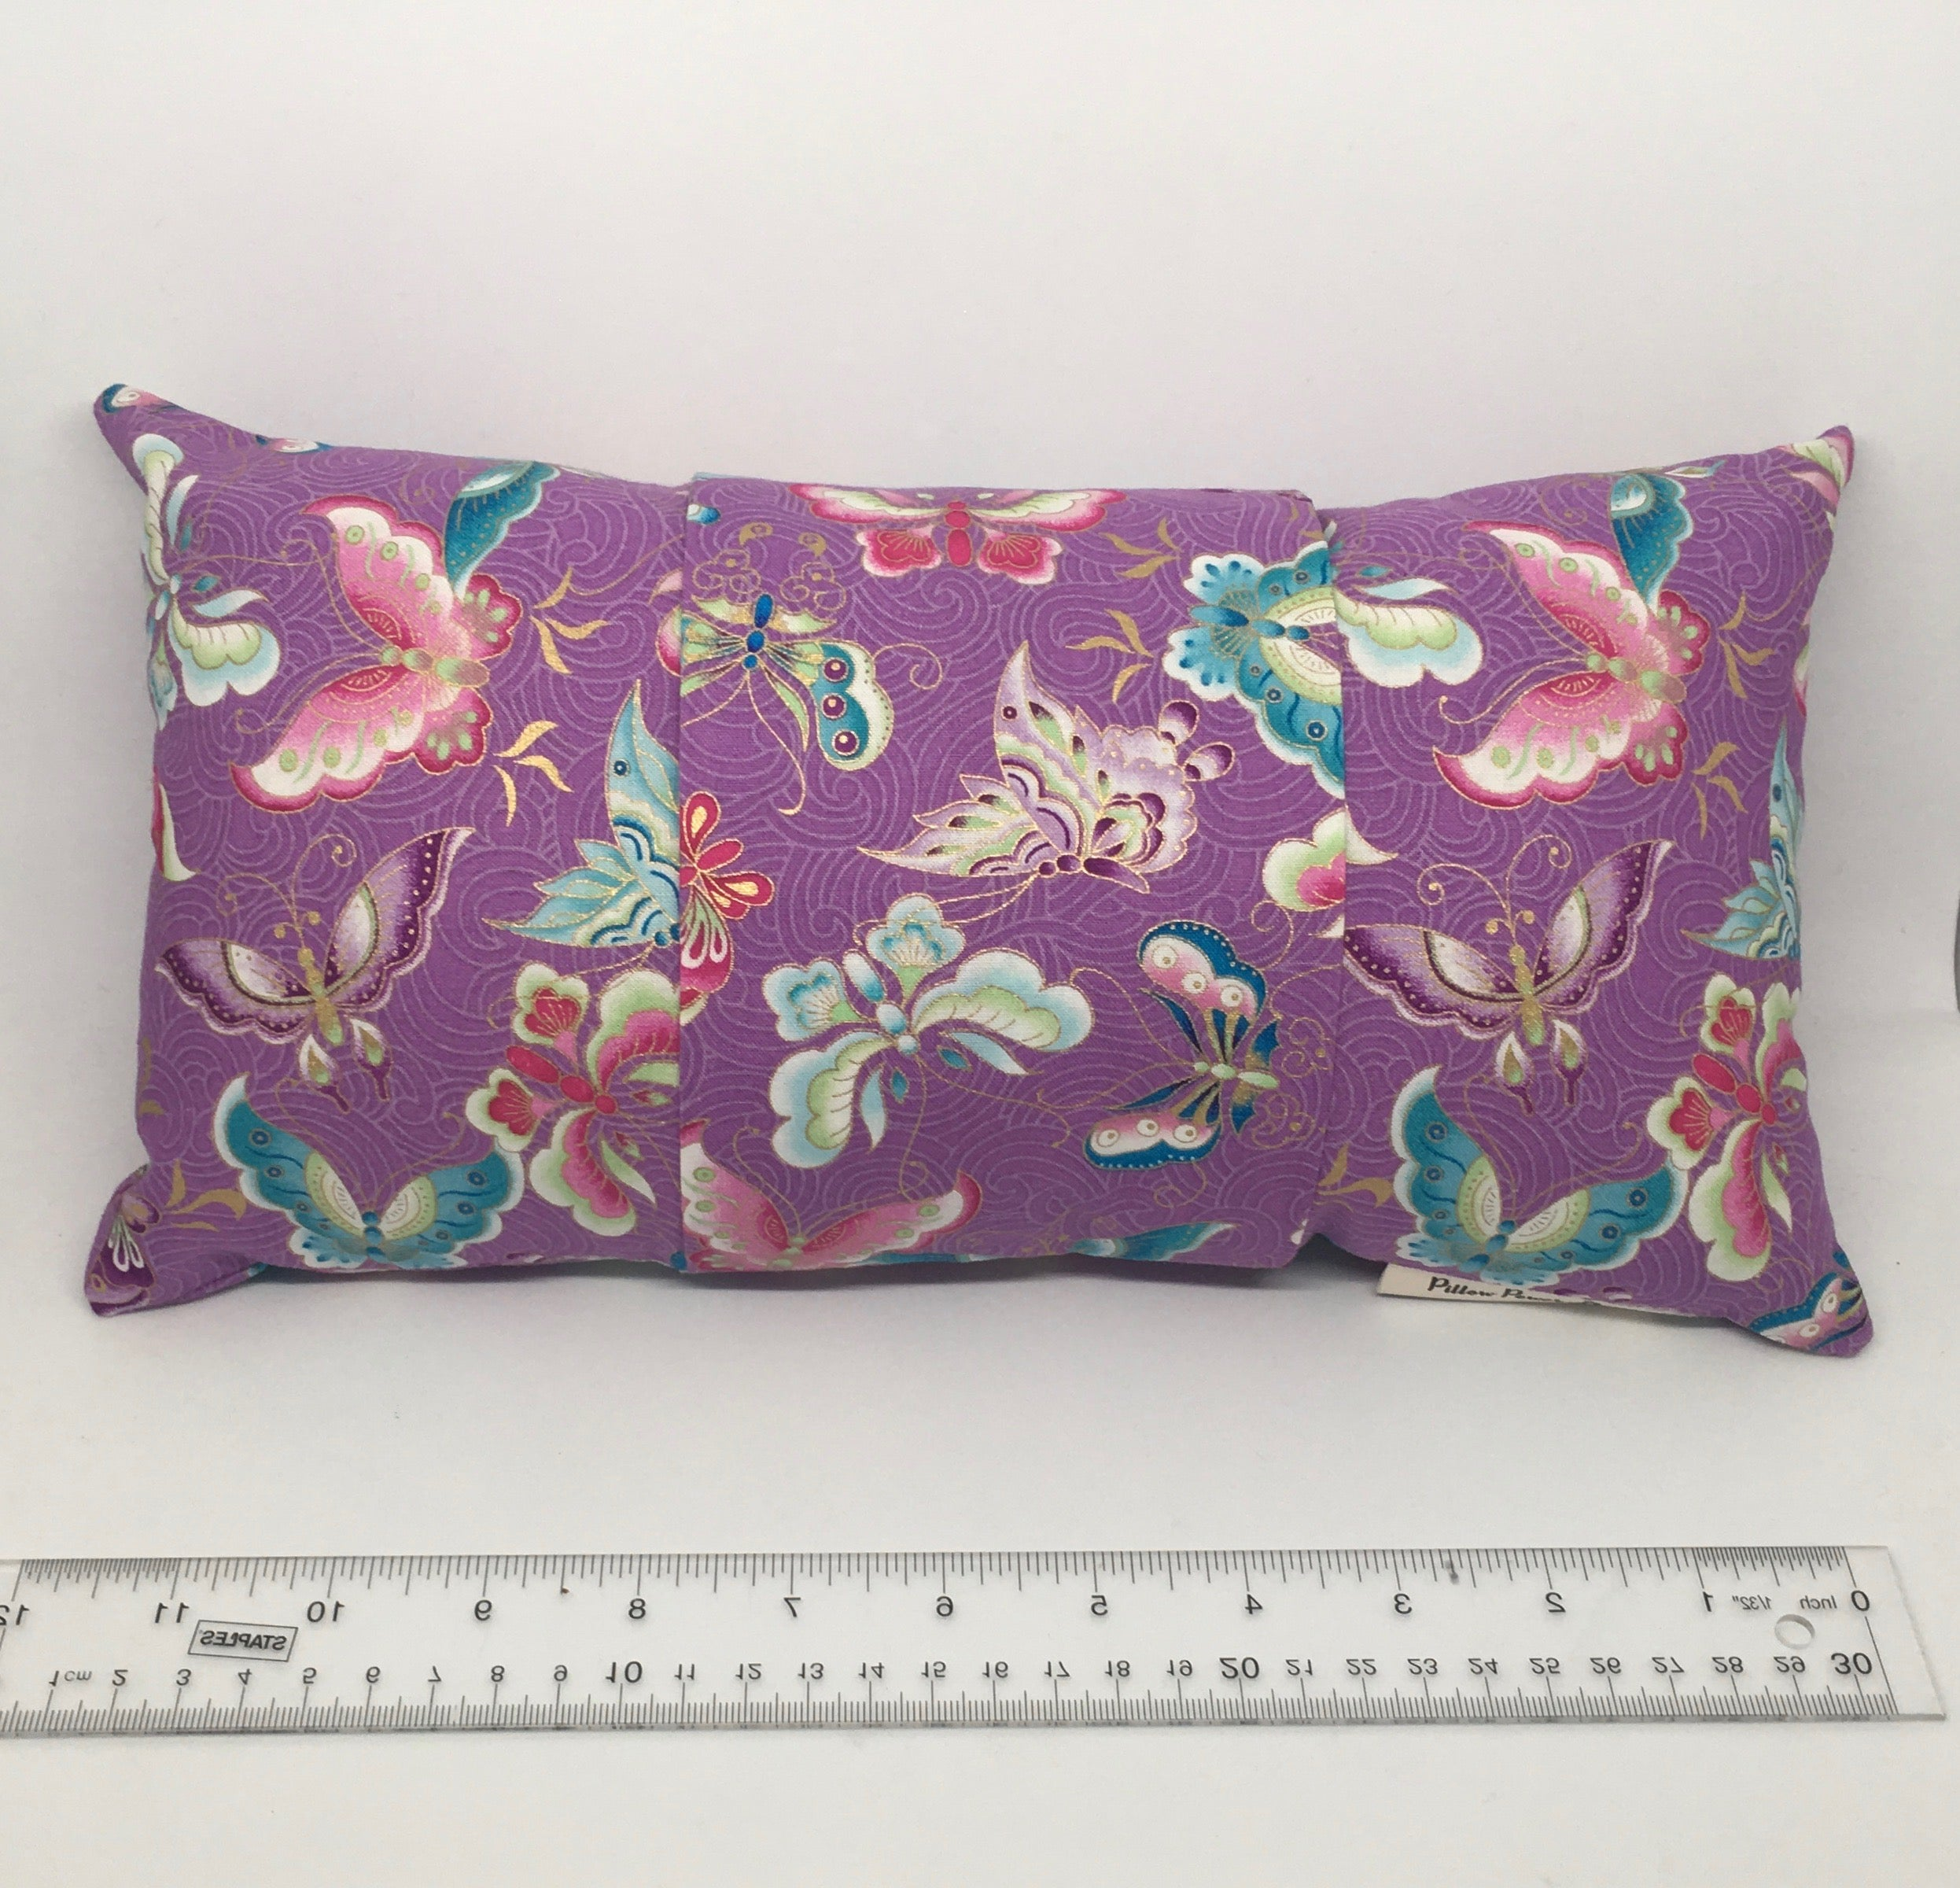 Lavender Butterflies -  Pillow Pocket for your Intentions